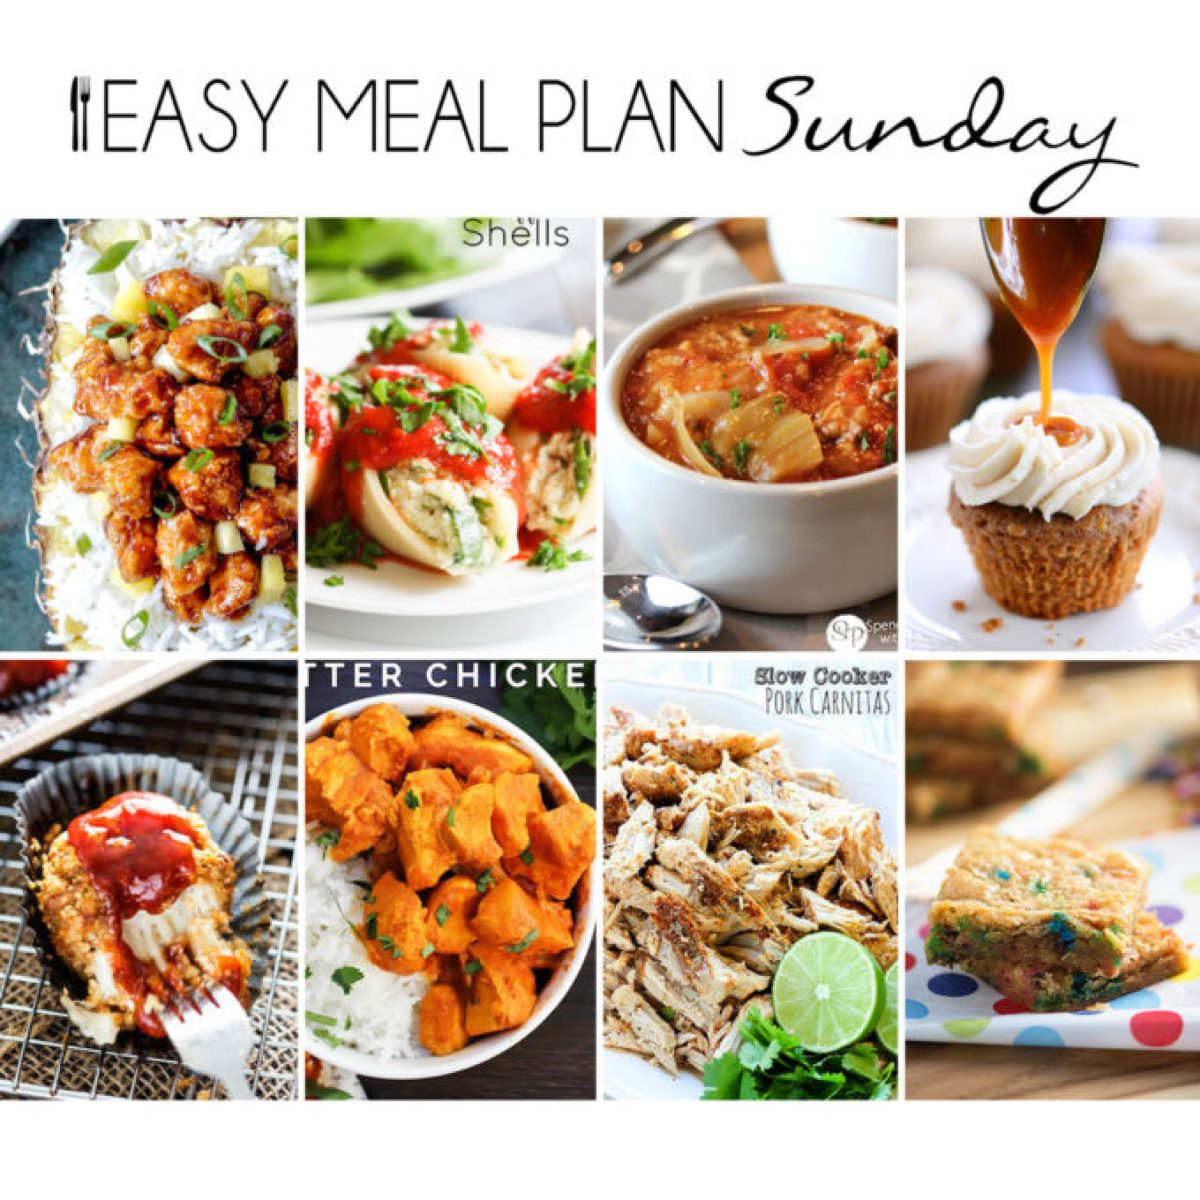 Take the planning out of meal plan with this easy set of delicious recipes.